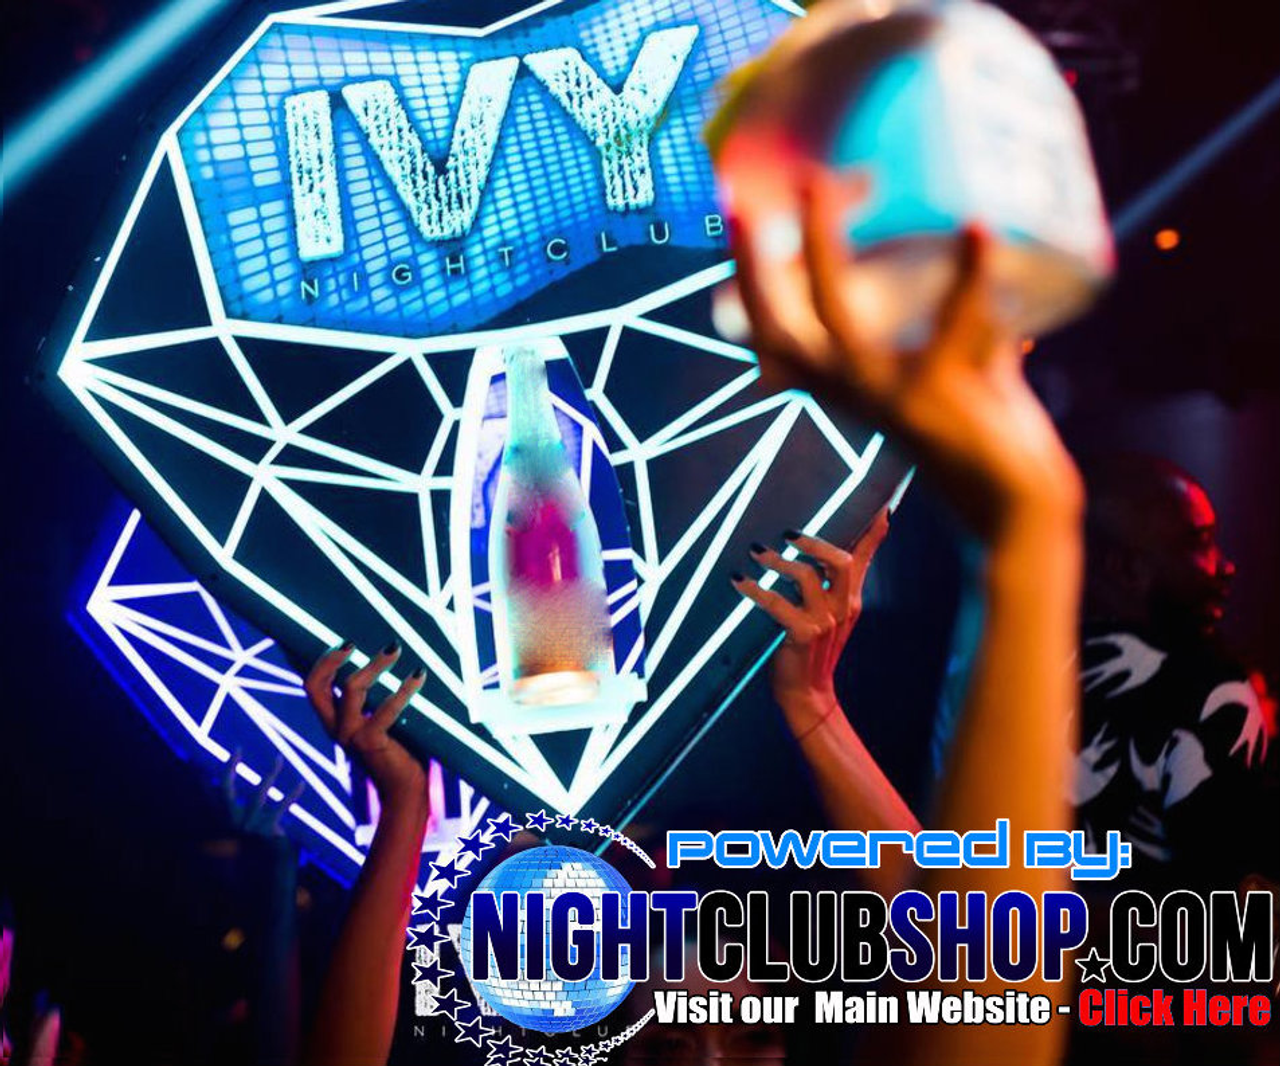 Monthly, Service,Plan, Nightclubshop, Bottle, Service, Delivery, Presenter, Presentation, Caddy, LED,VIP,Tray,Nightclub,custom,carrier,holder,club,IVE,Miami